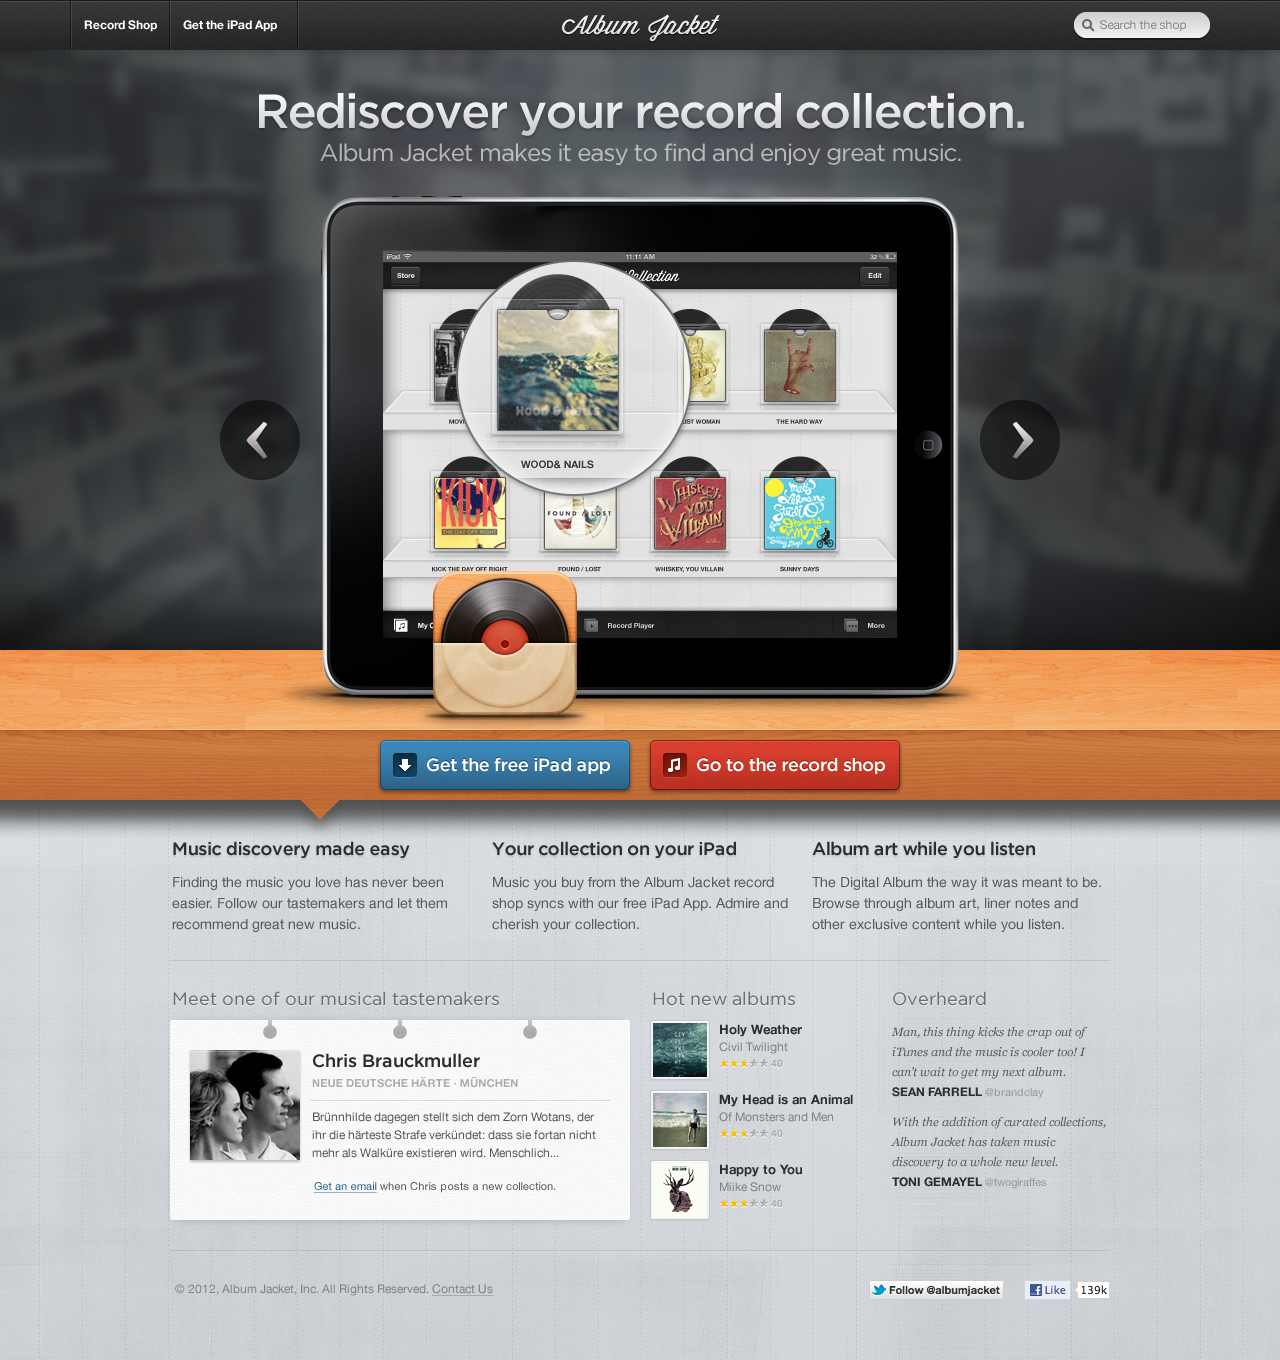 homepage-040612.png by Chris Brauckmuller